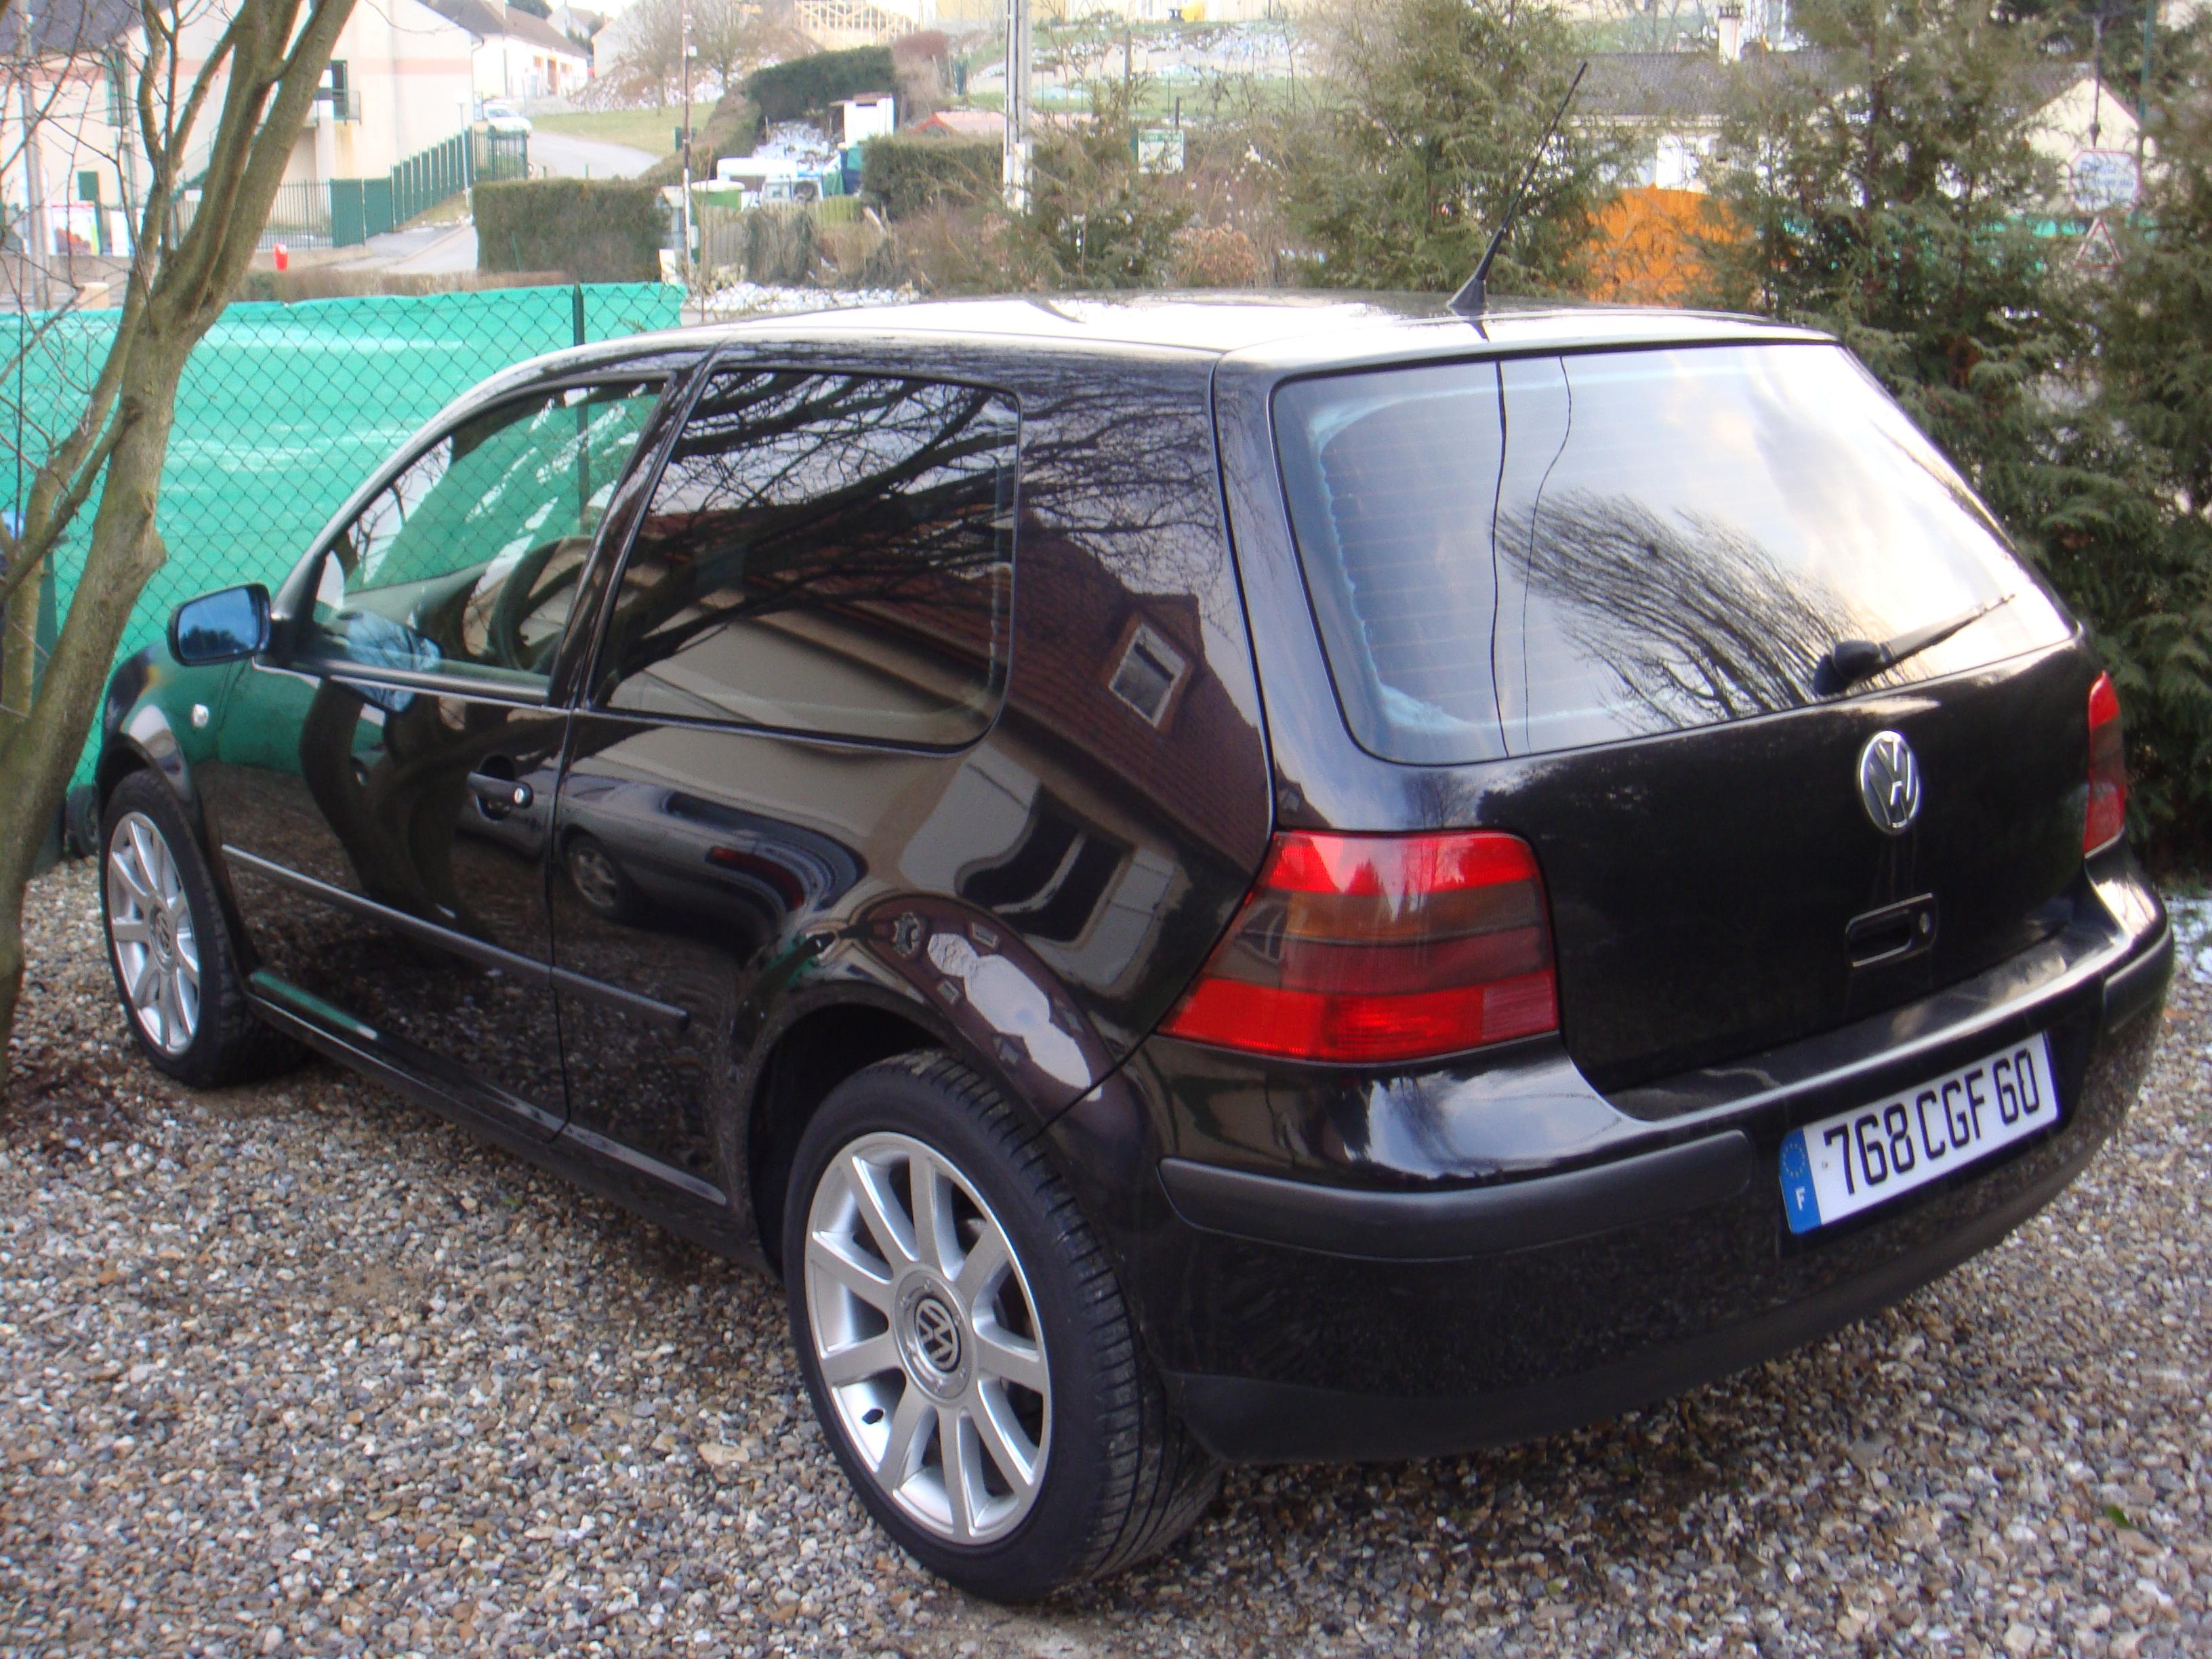 golf 4 tdi 115 bv6 de tom010 garage des golf iv tdi 115 page 2 forum volkswagen golf iv. Black Bedroom Furniture Sets. Home Design Ideas